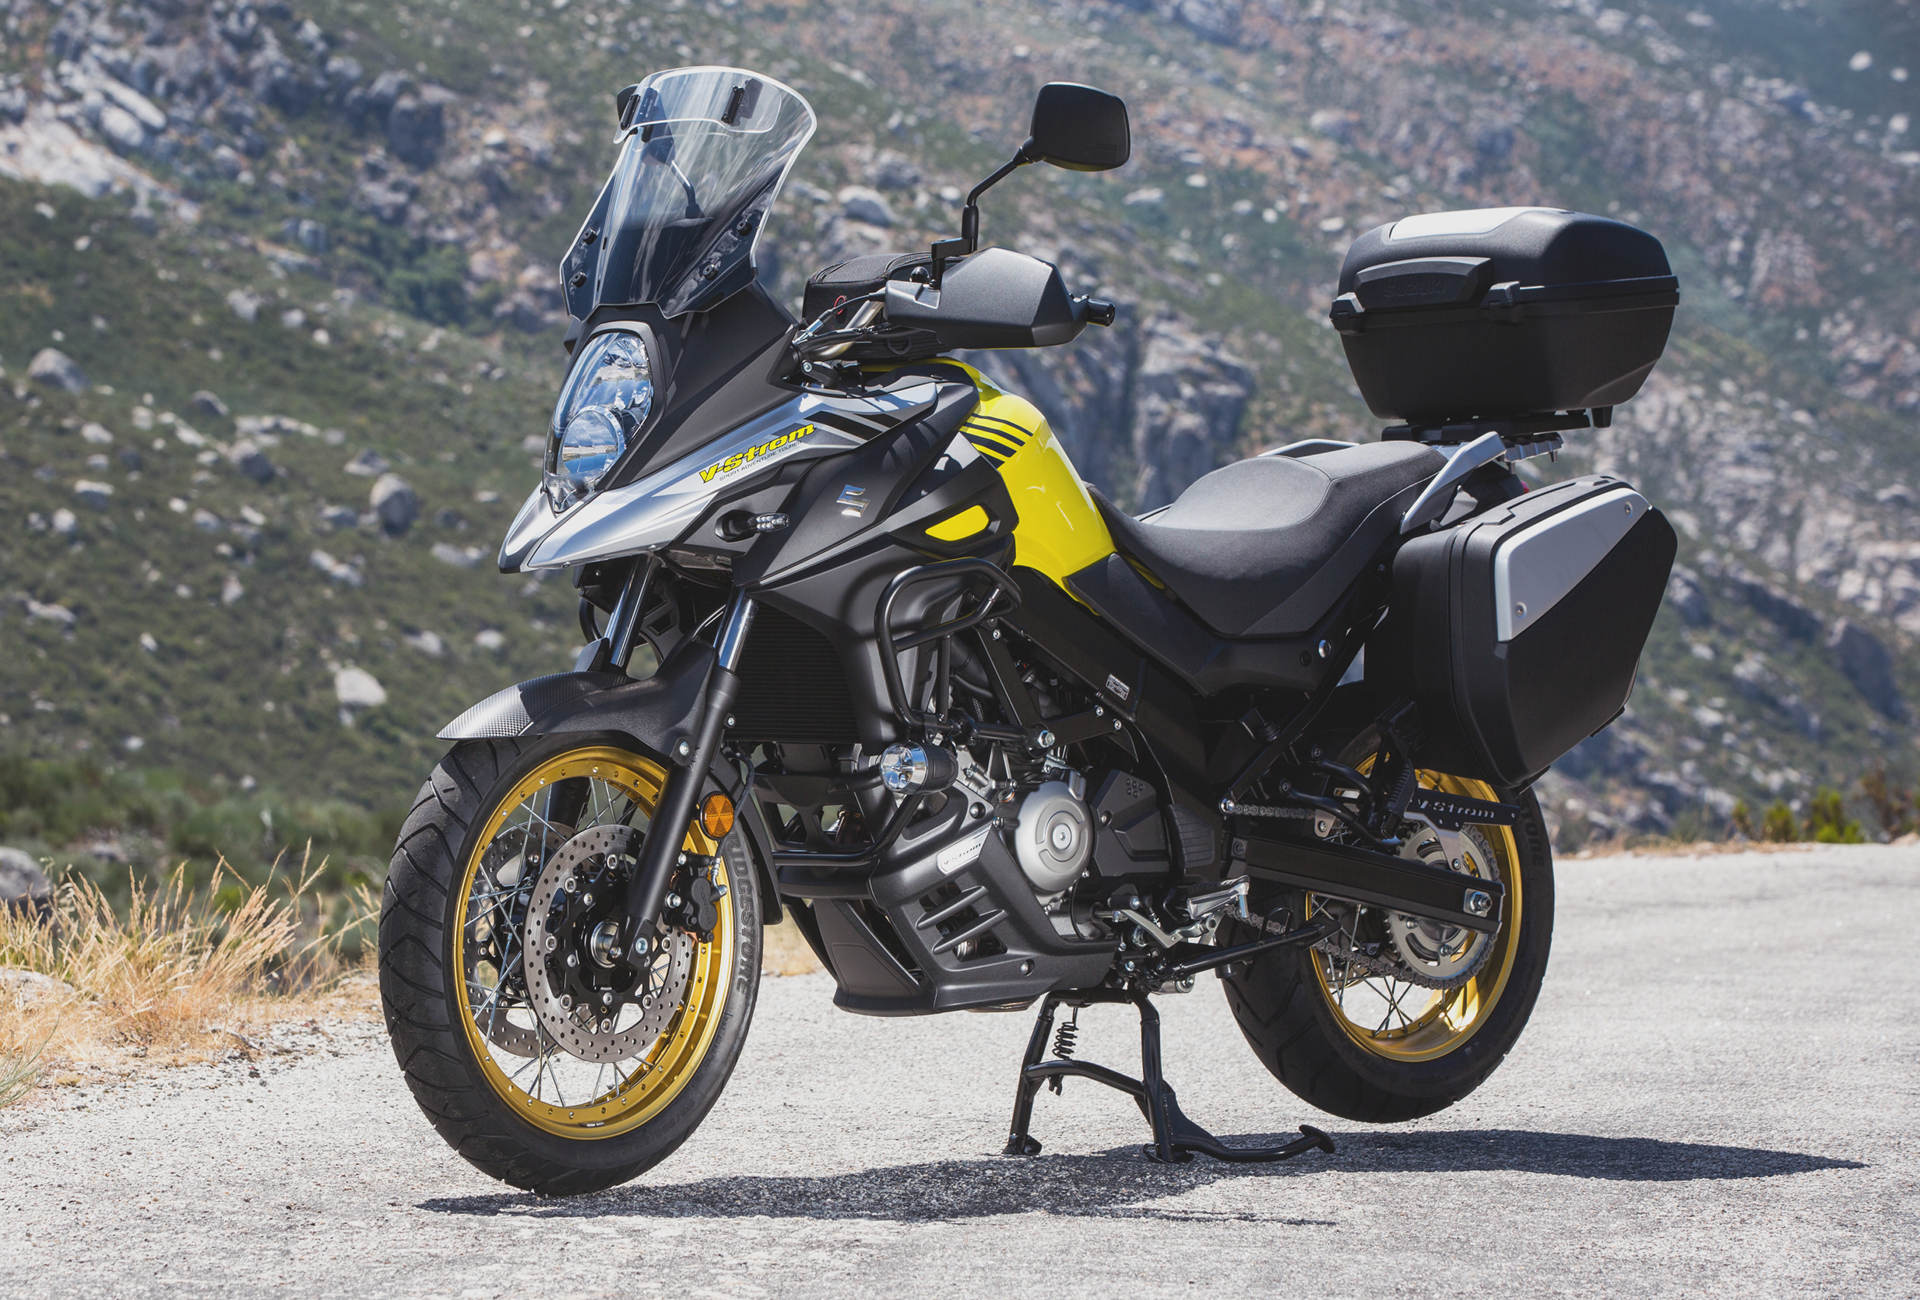 Suzuki Redesigns Popular Vstrom 650 Models